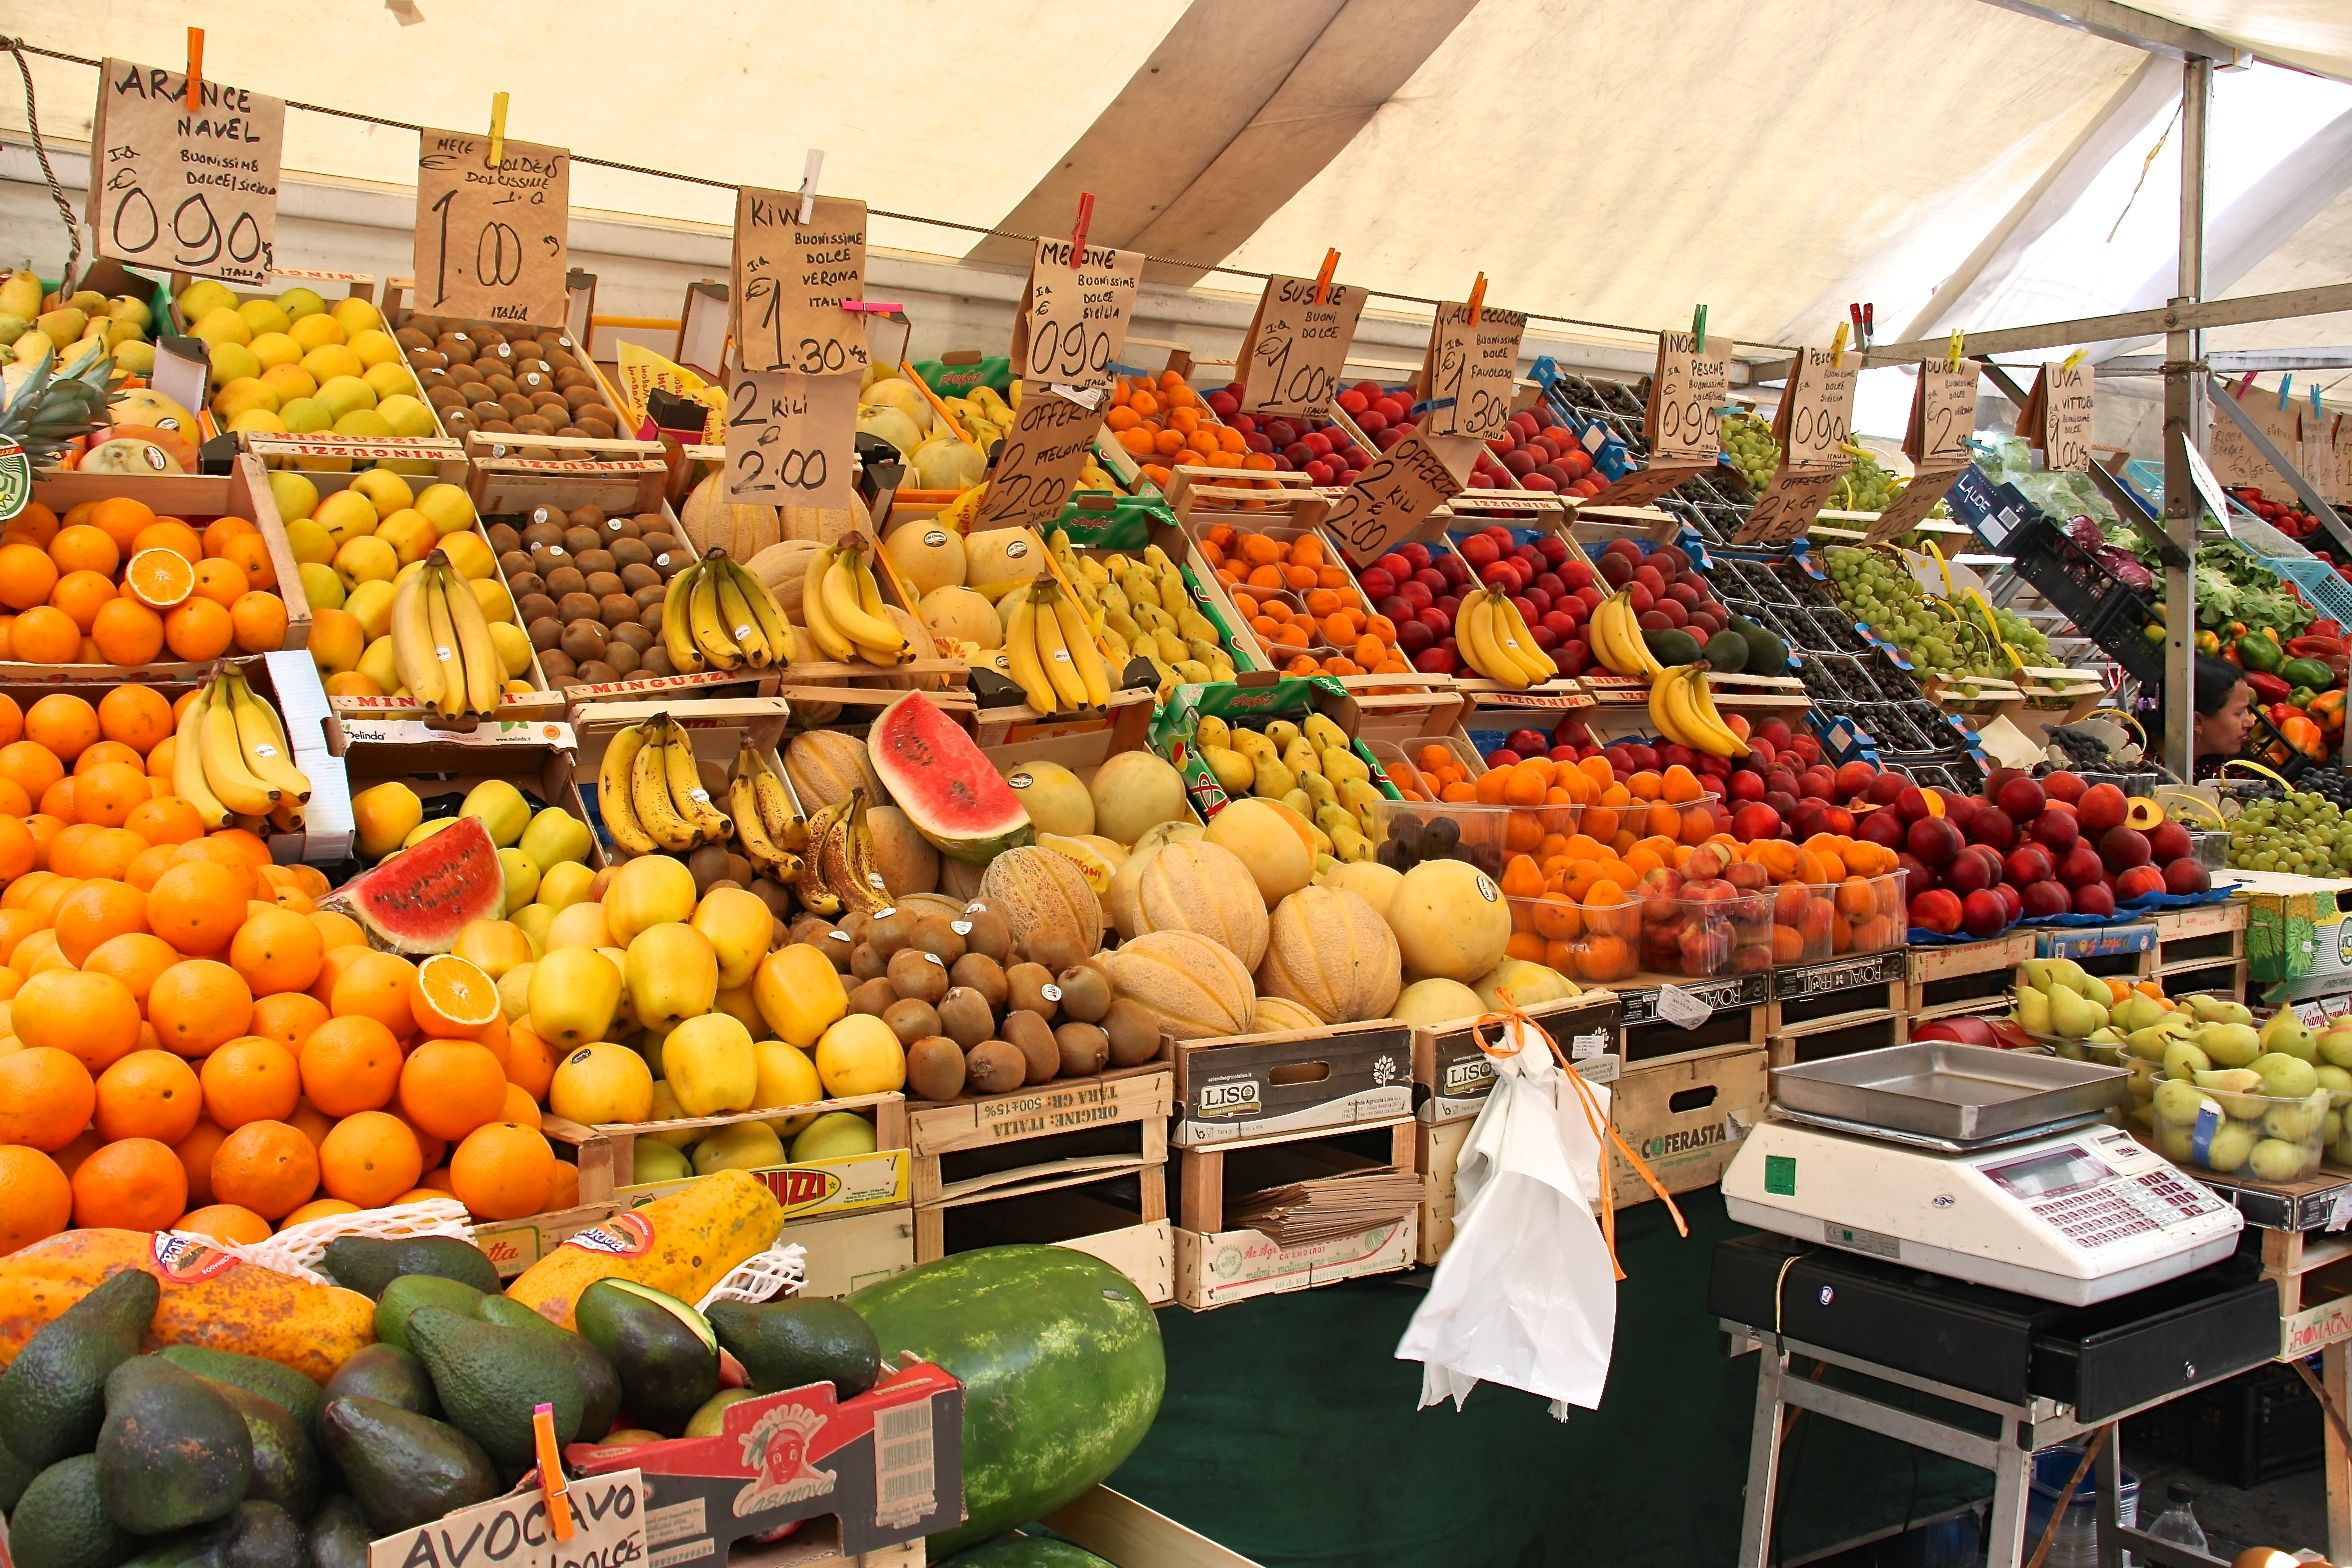 Padua's fruit and vegetable market is piled high with fresh, fragrant produce